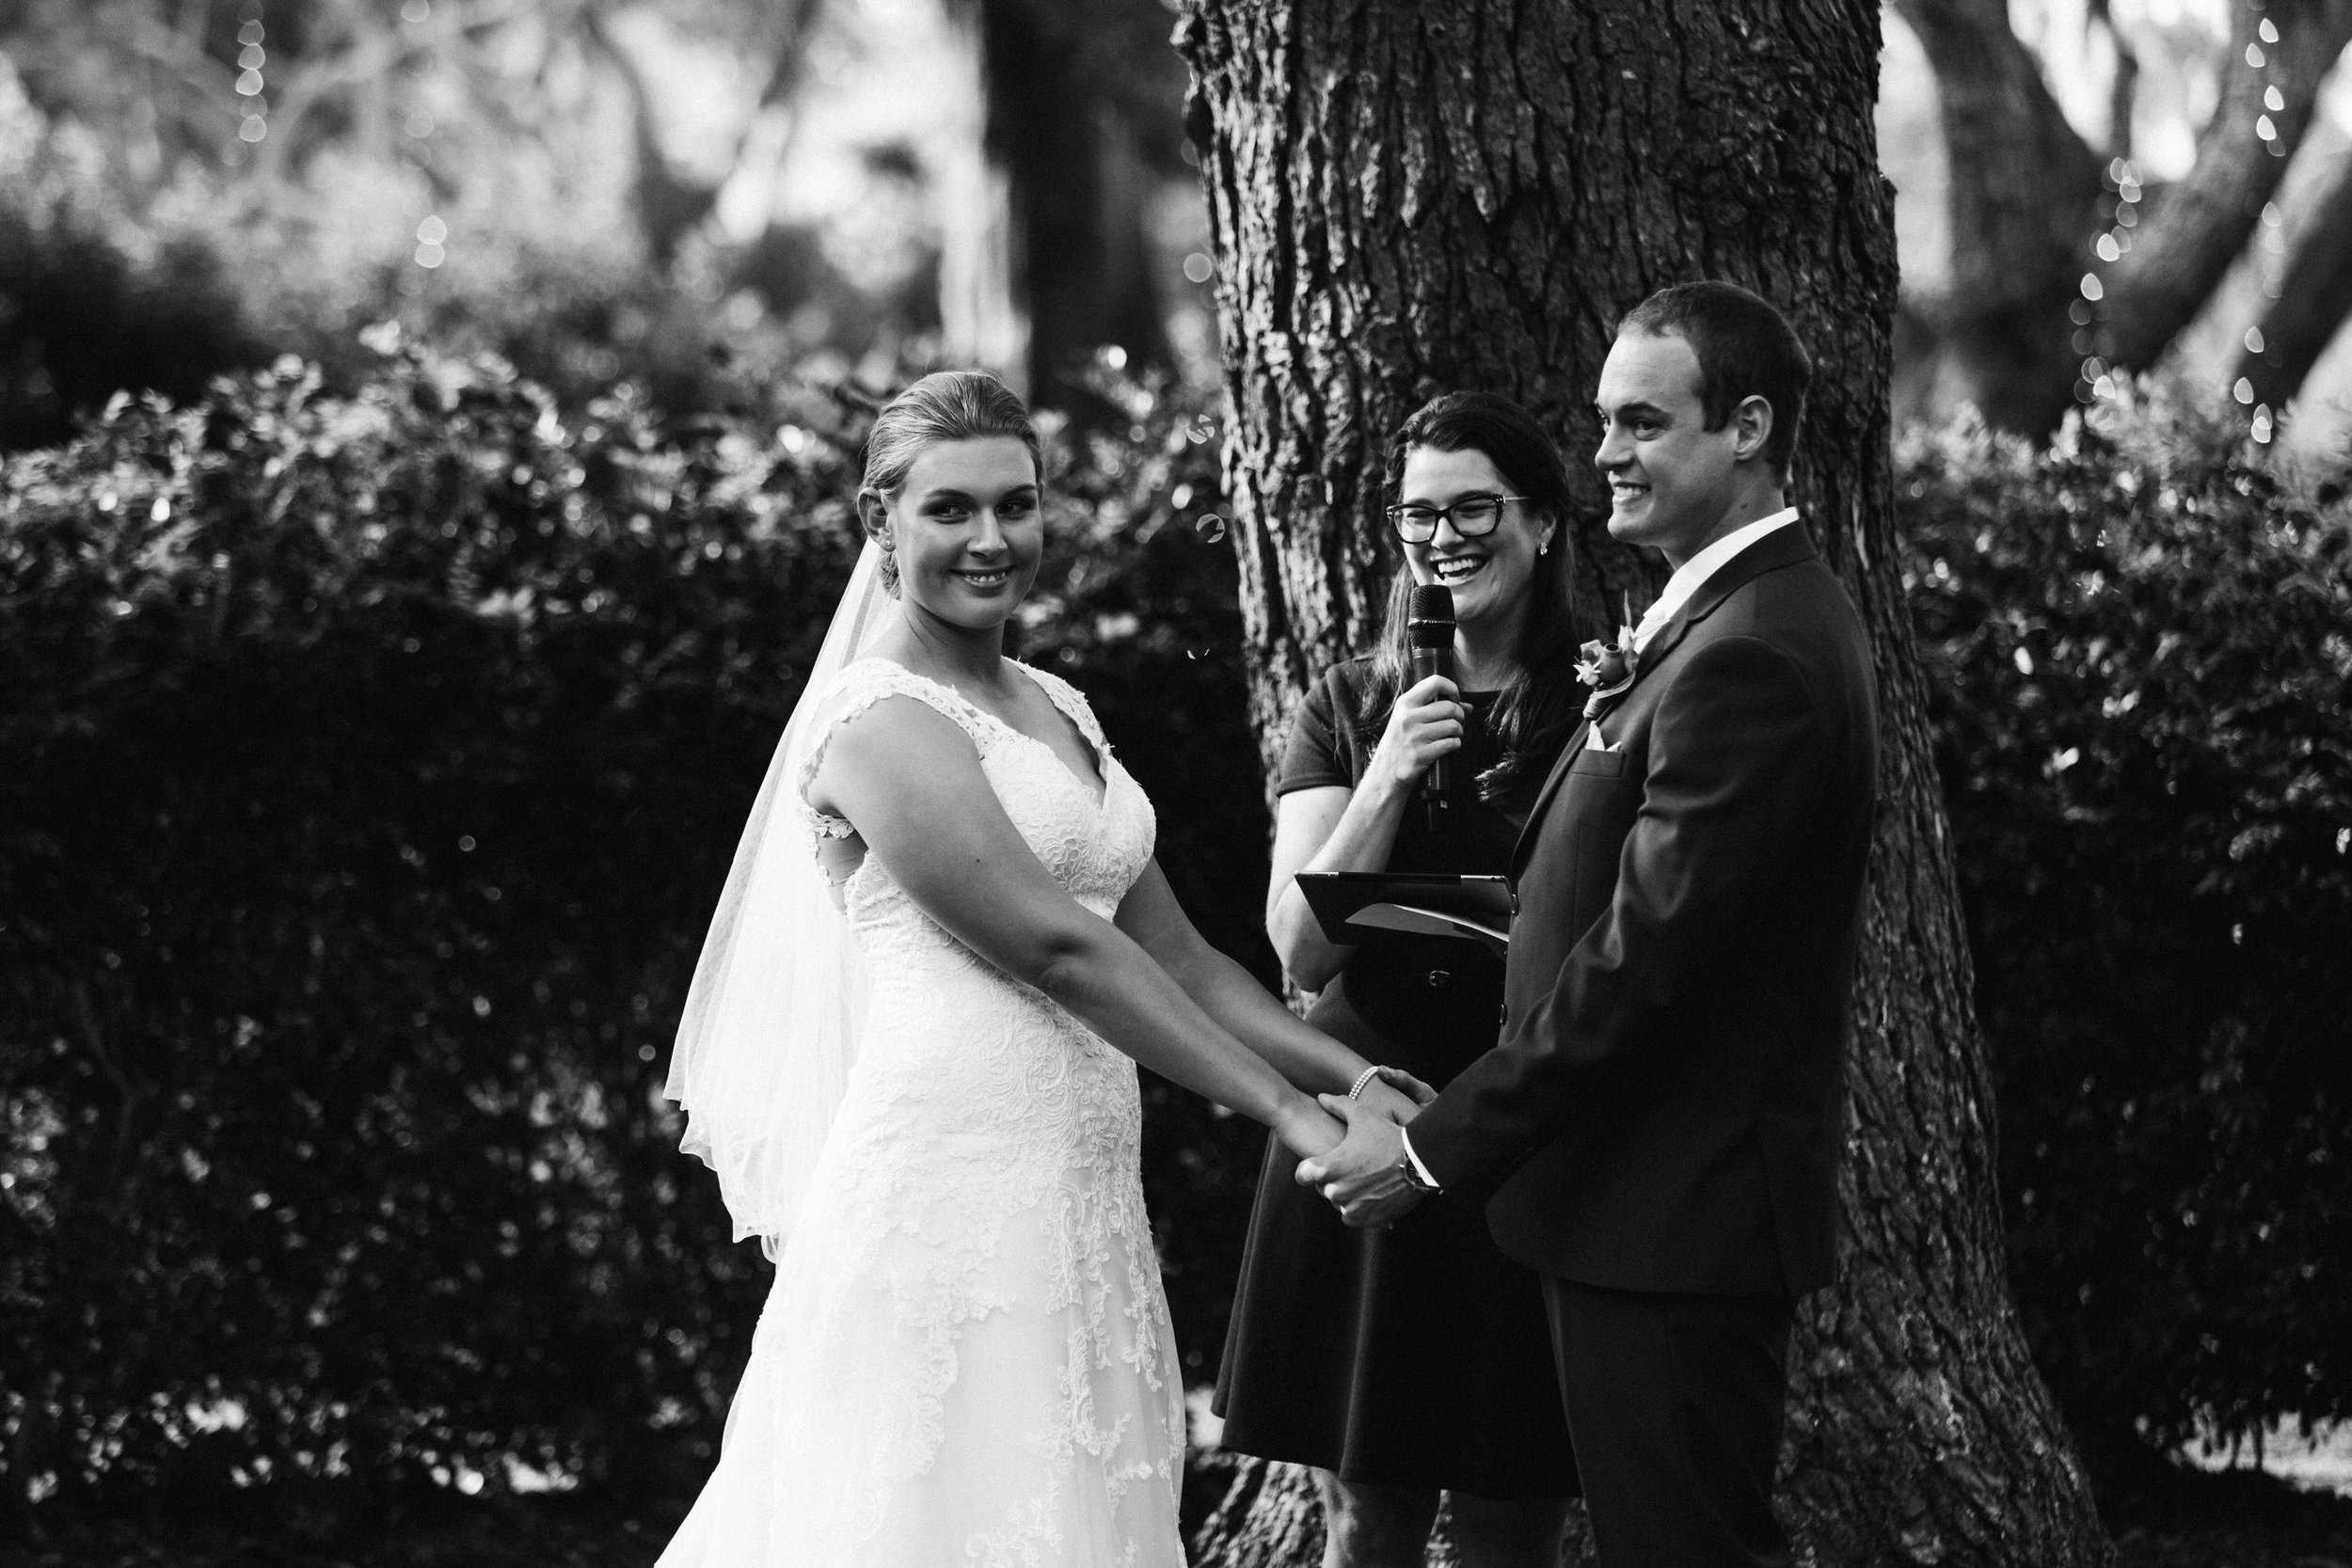 Toowoomba QLD Wedding 093.jpg